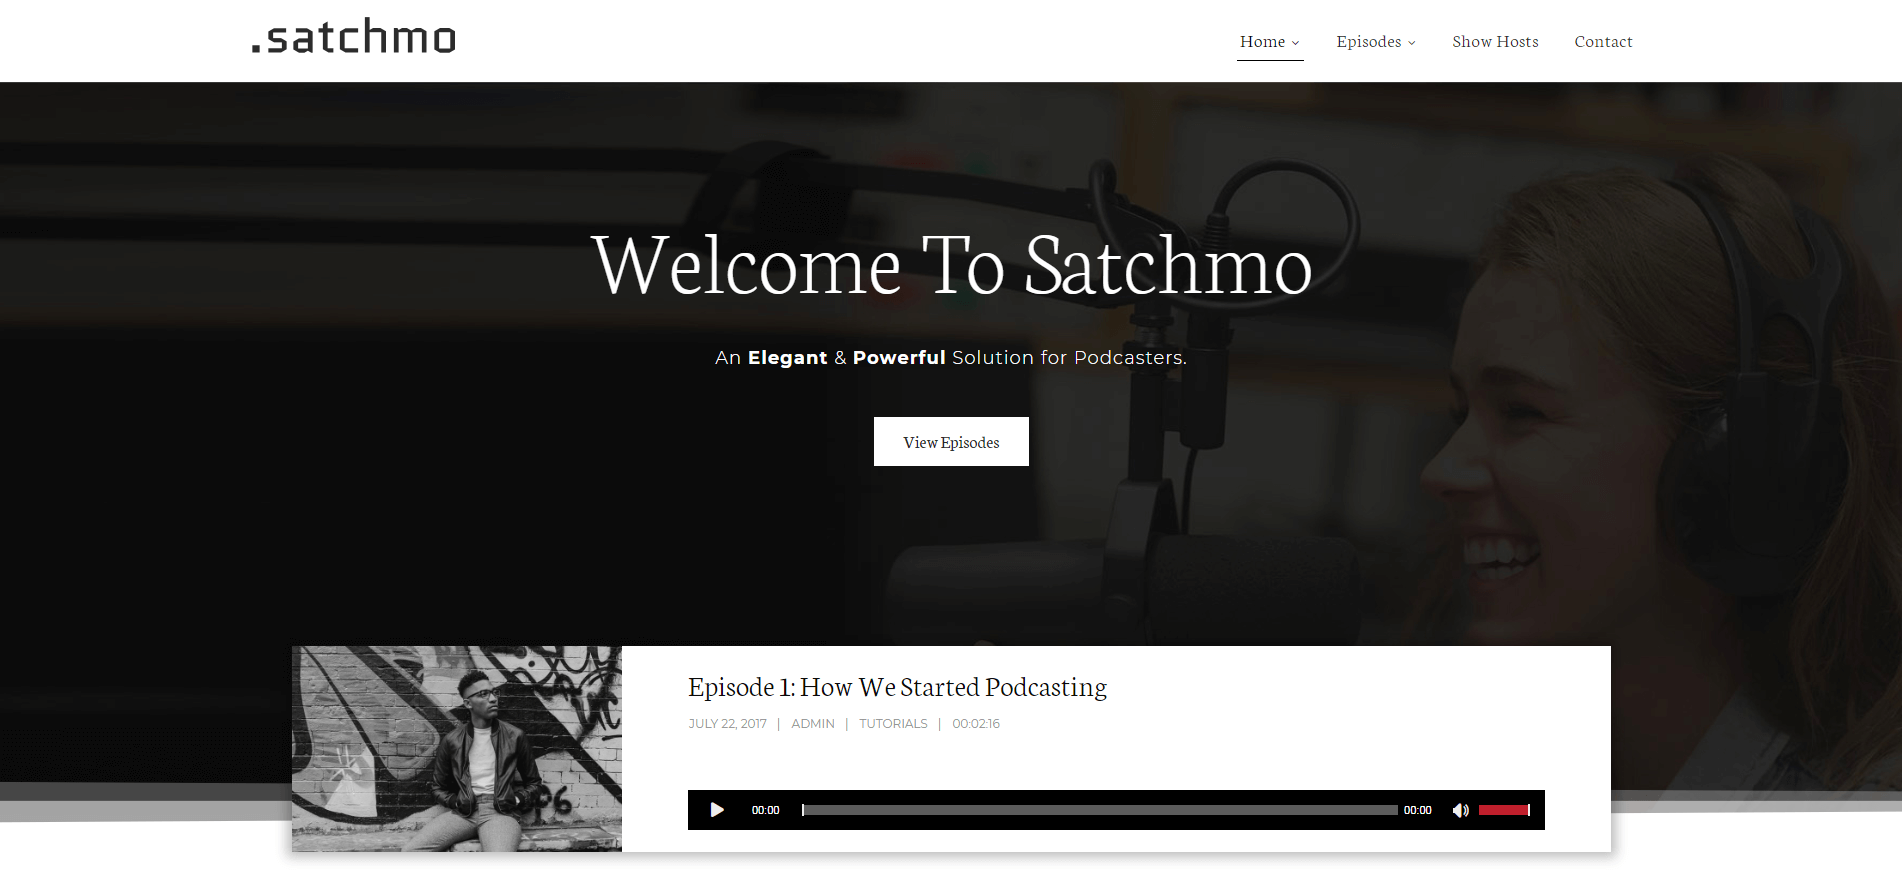 The Satchmo podcasting theme.